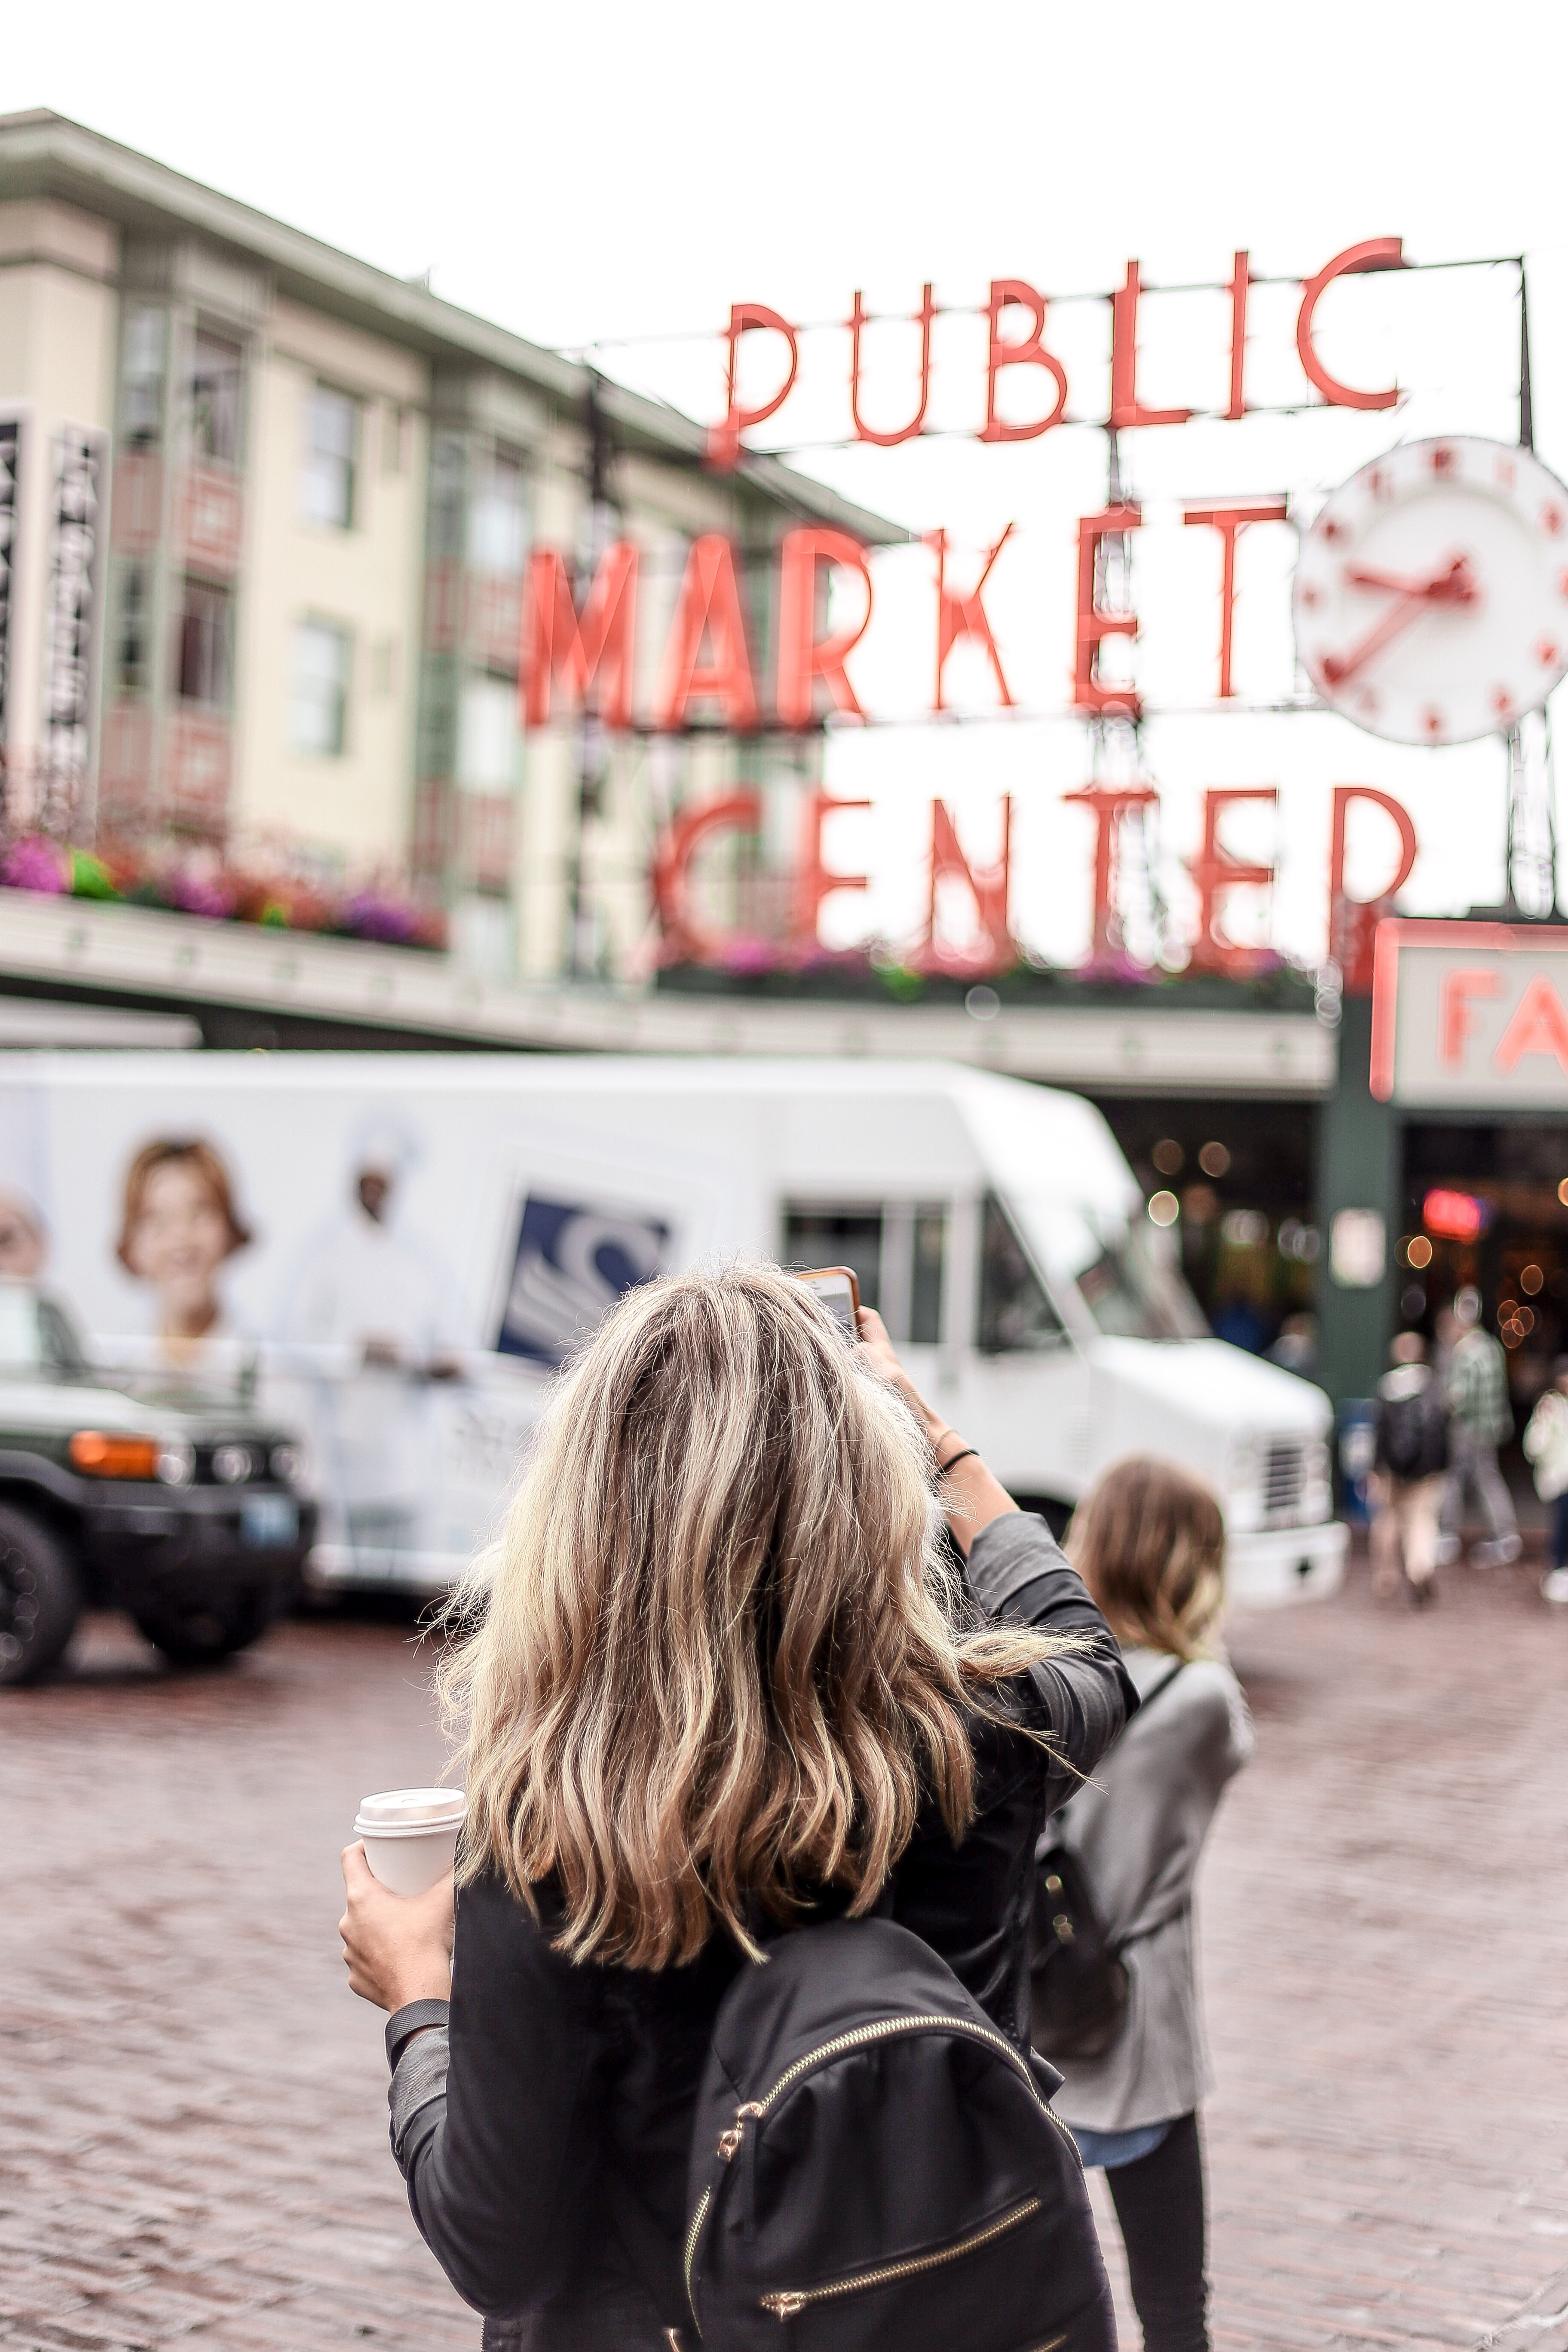 woman standing in front of Public Market Center